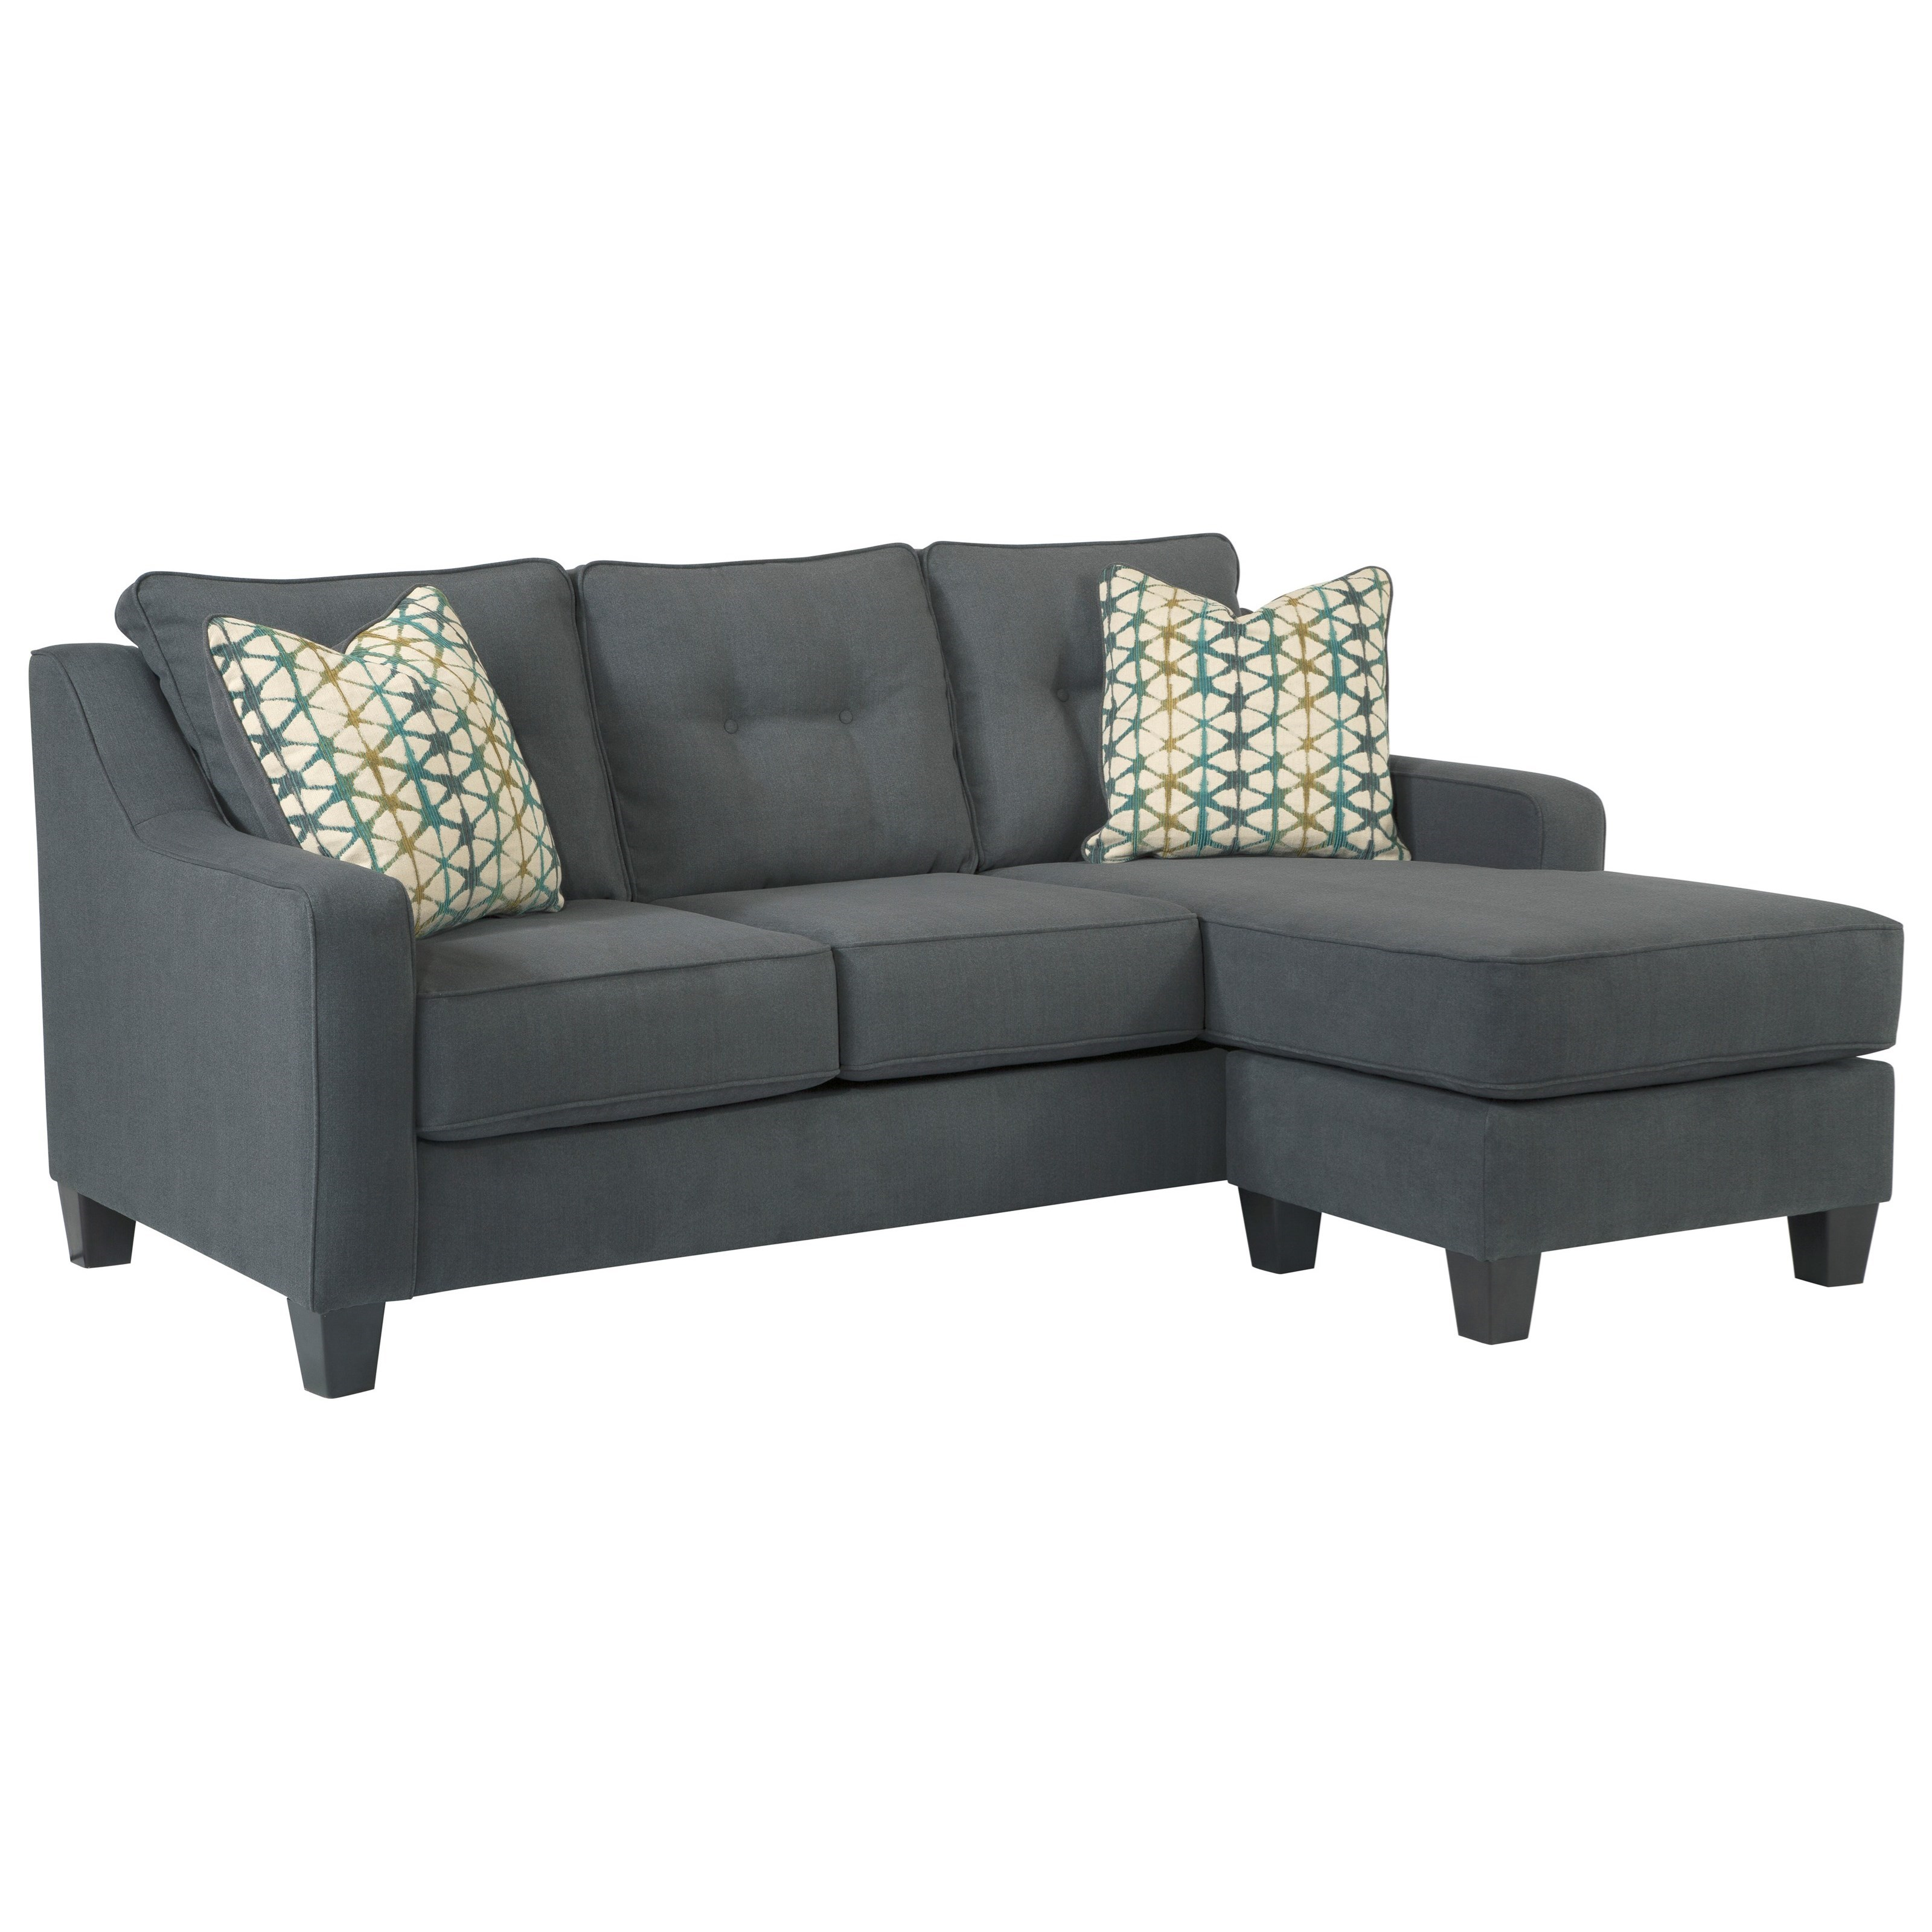 Shayla Sofa Chaise by Ashley Furniture at Lapeer Furniture & Mattress Center